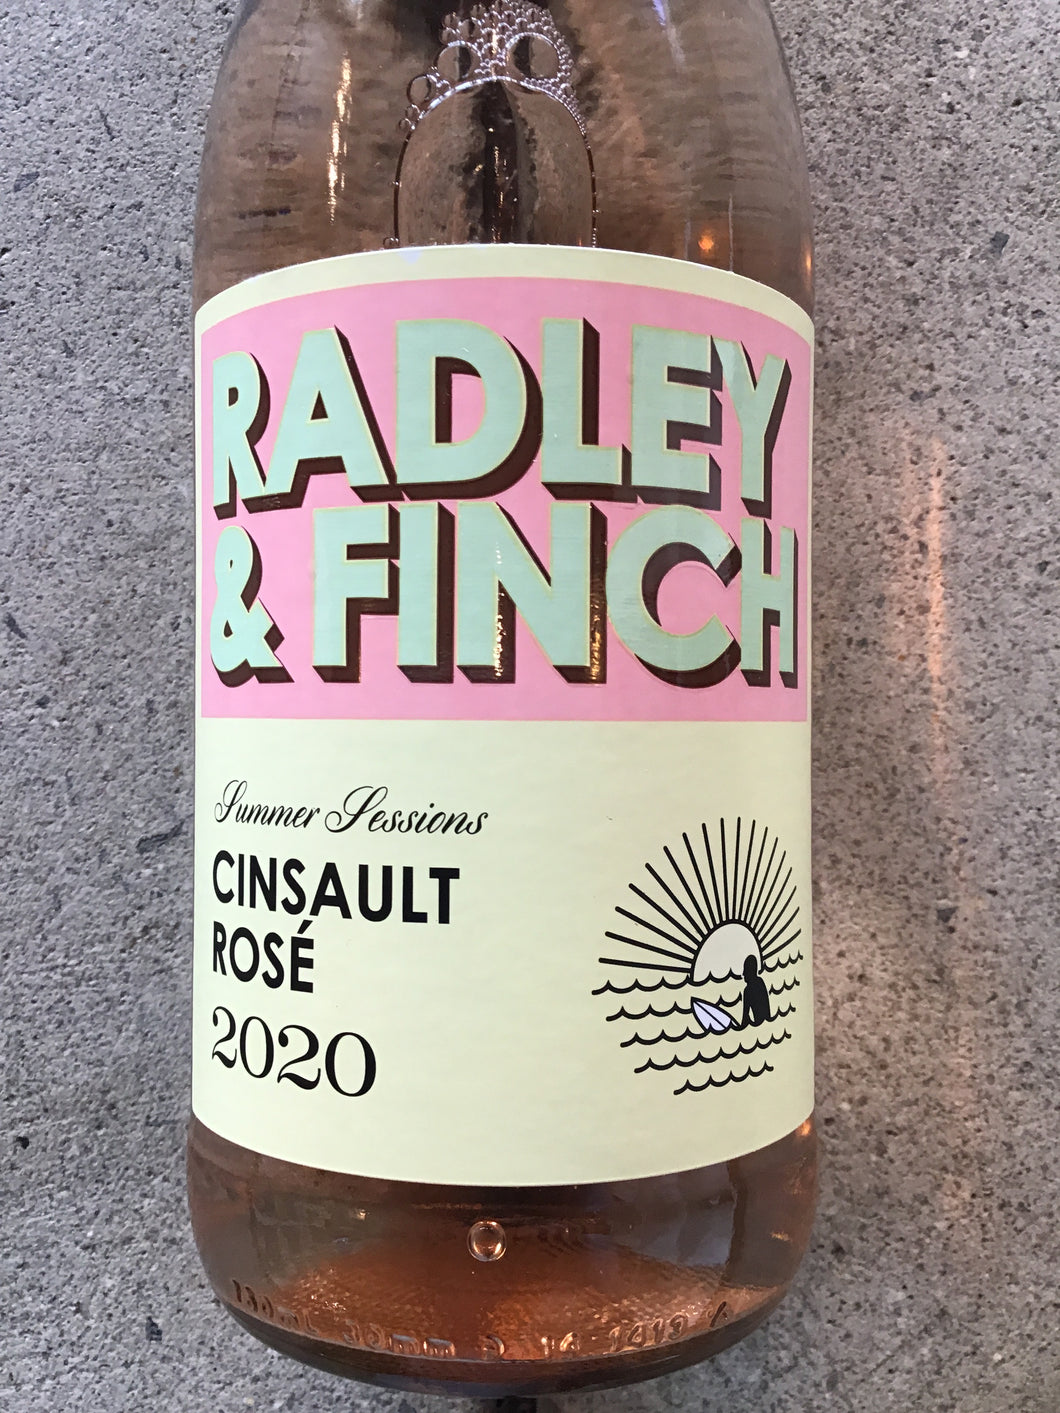 Radley & Finch - Cinsault Rose